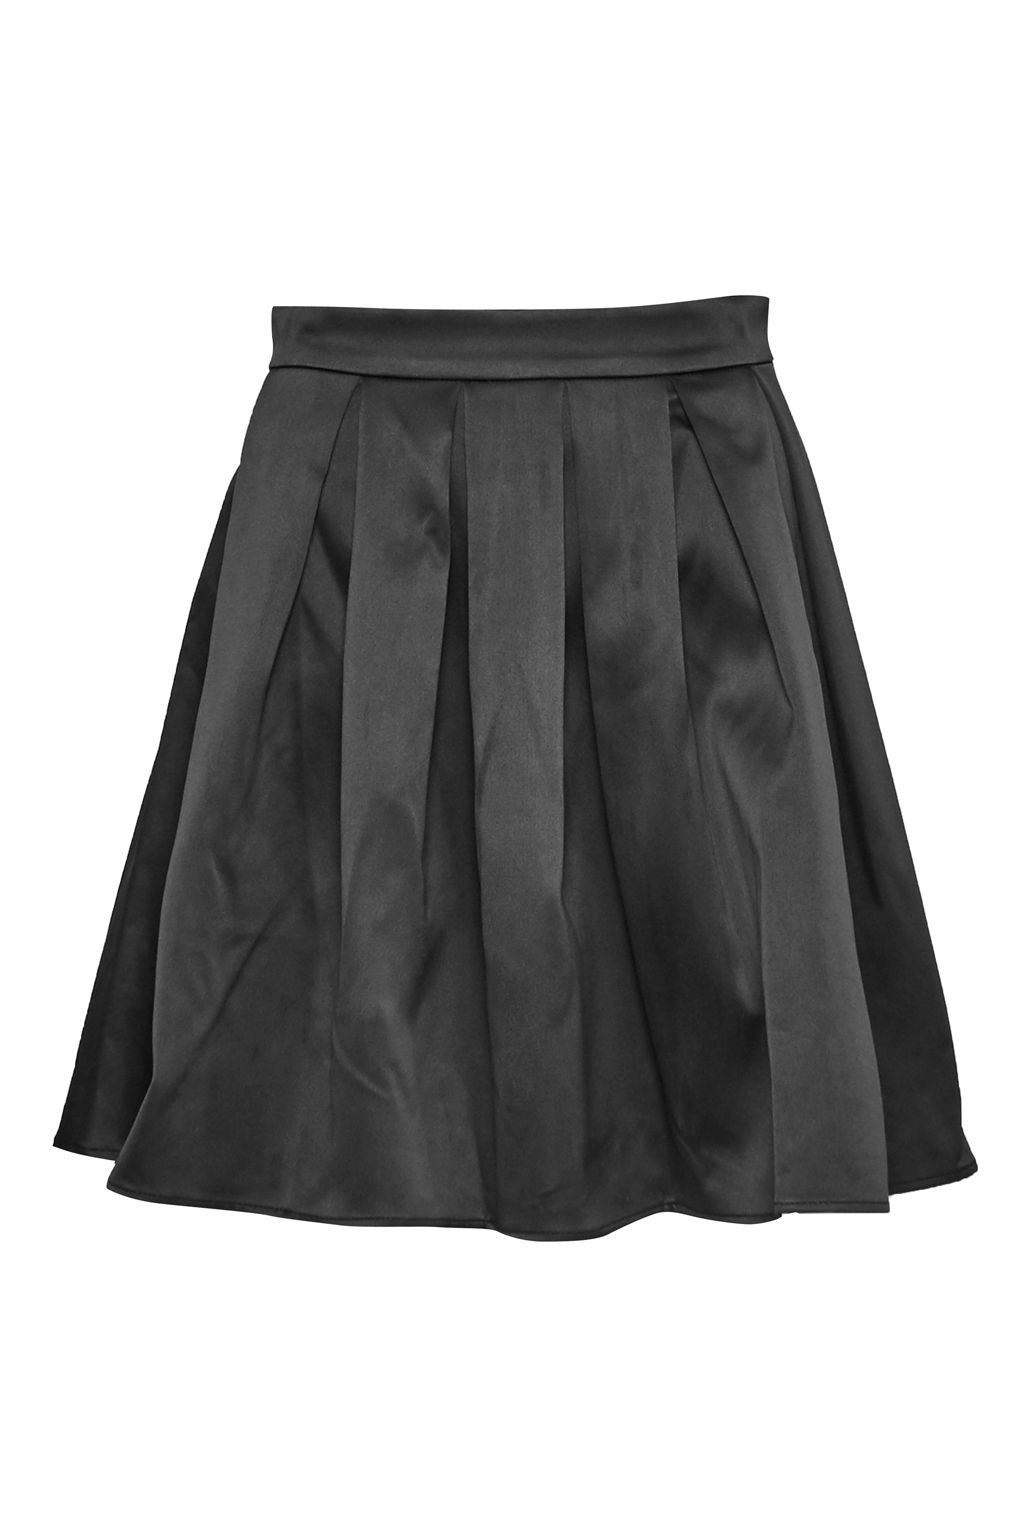 French Connection Juliet Satin Flared Skirt, Black